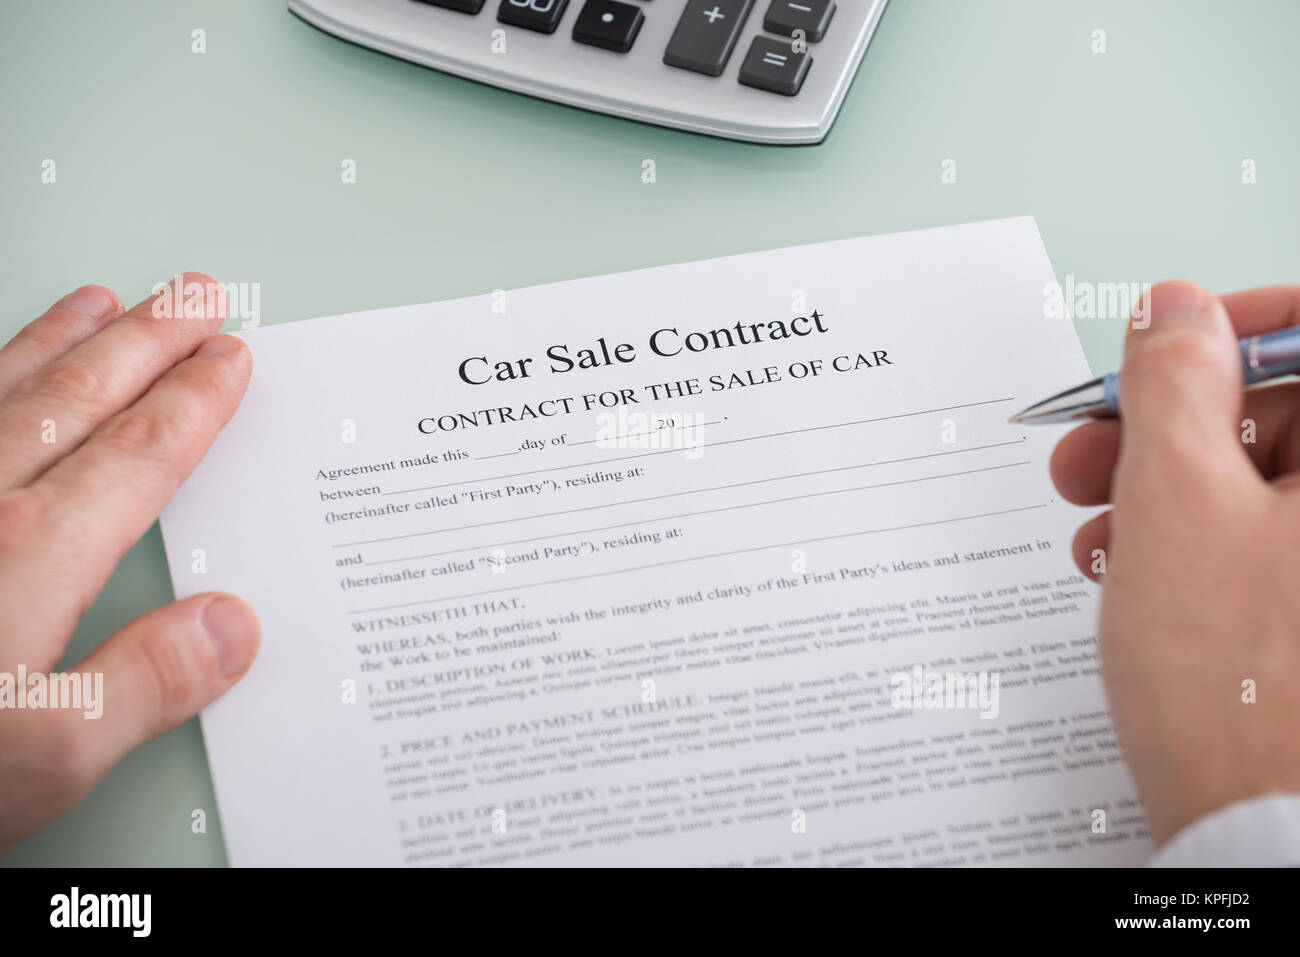 person filling car sale contract form